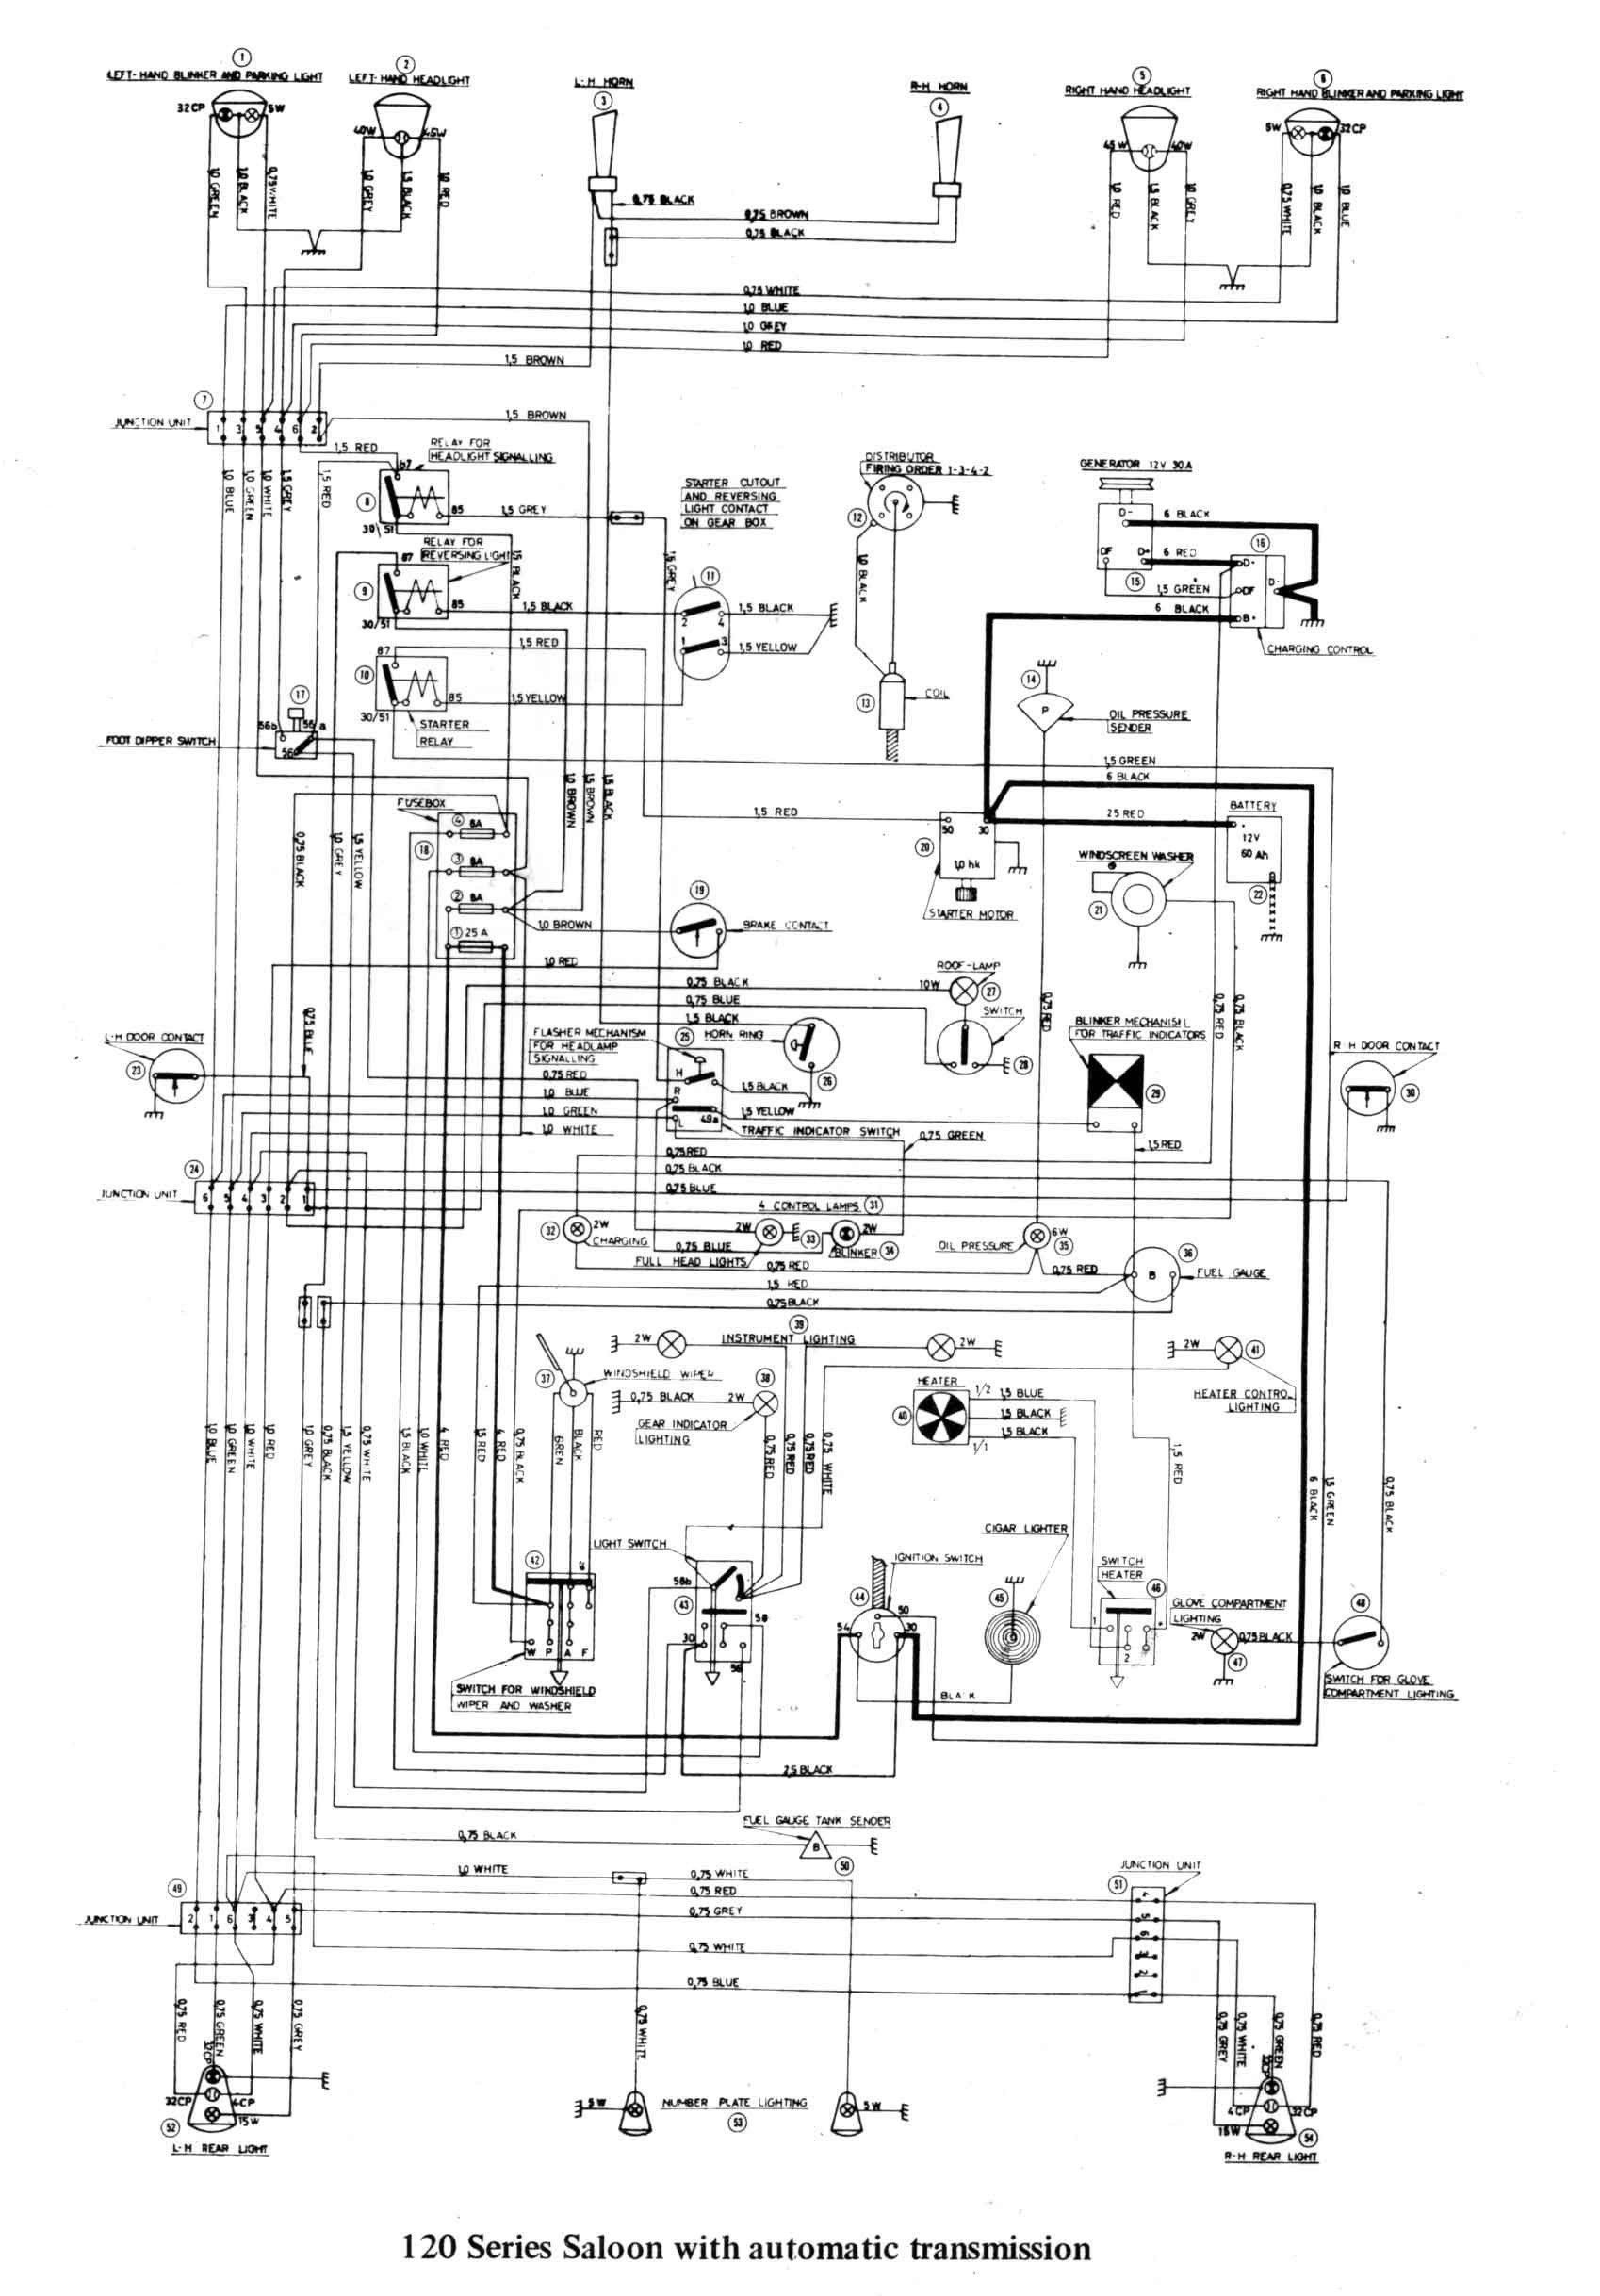 Jvc Kd-Sr61 Wiring Harness Diagram from detoxicrecenze.com